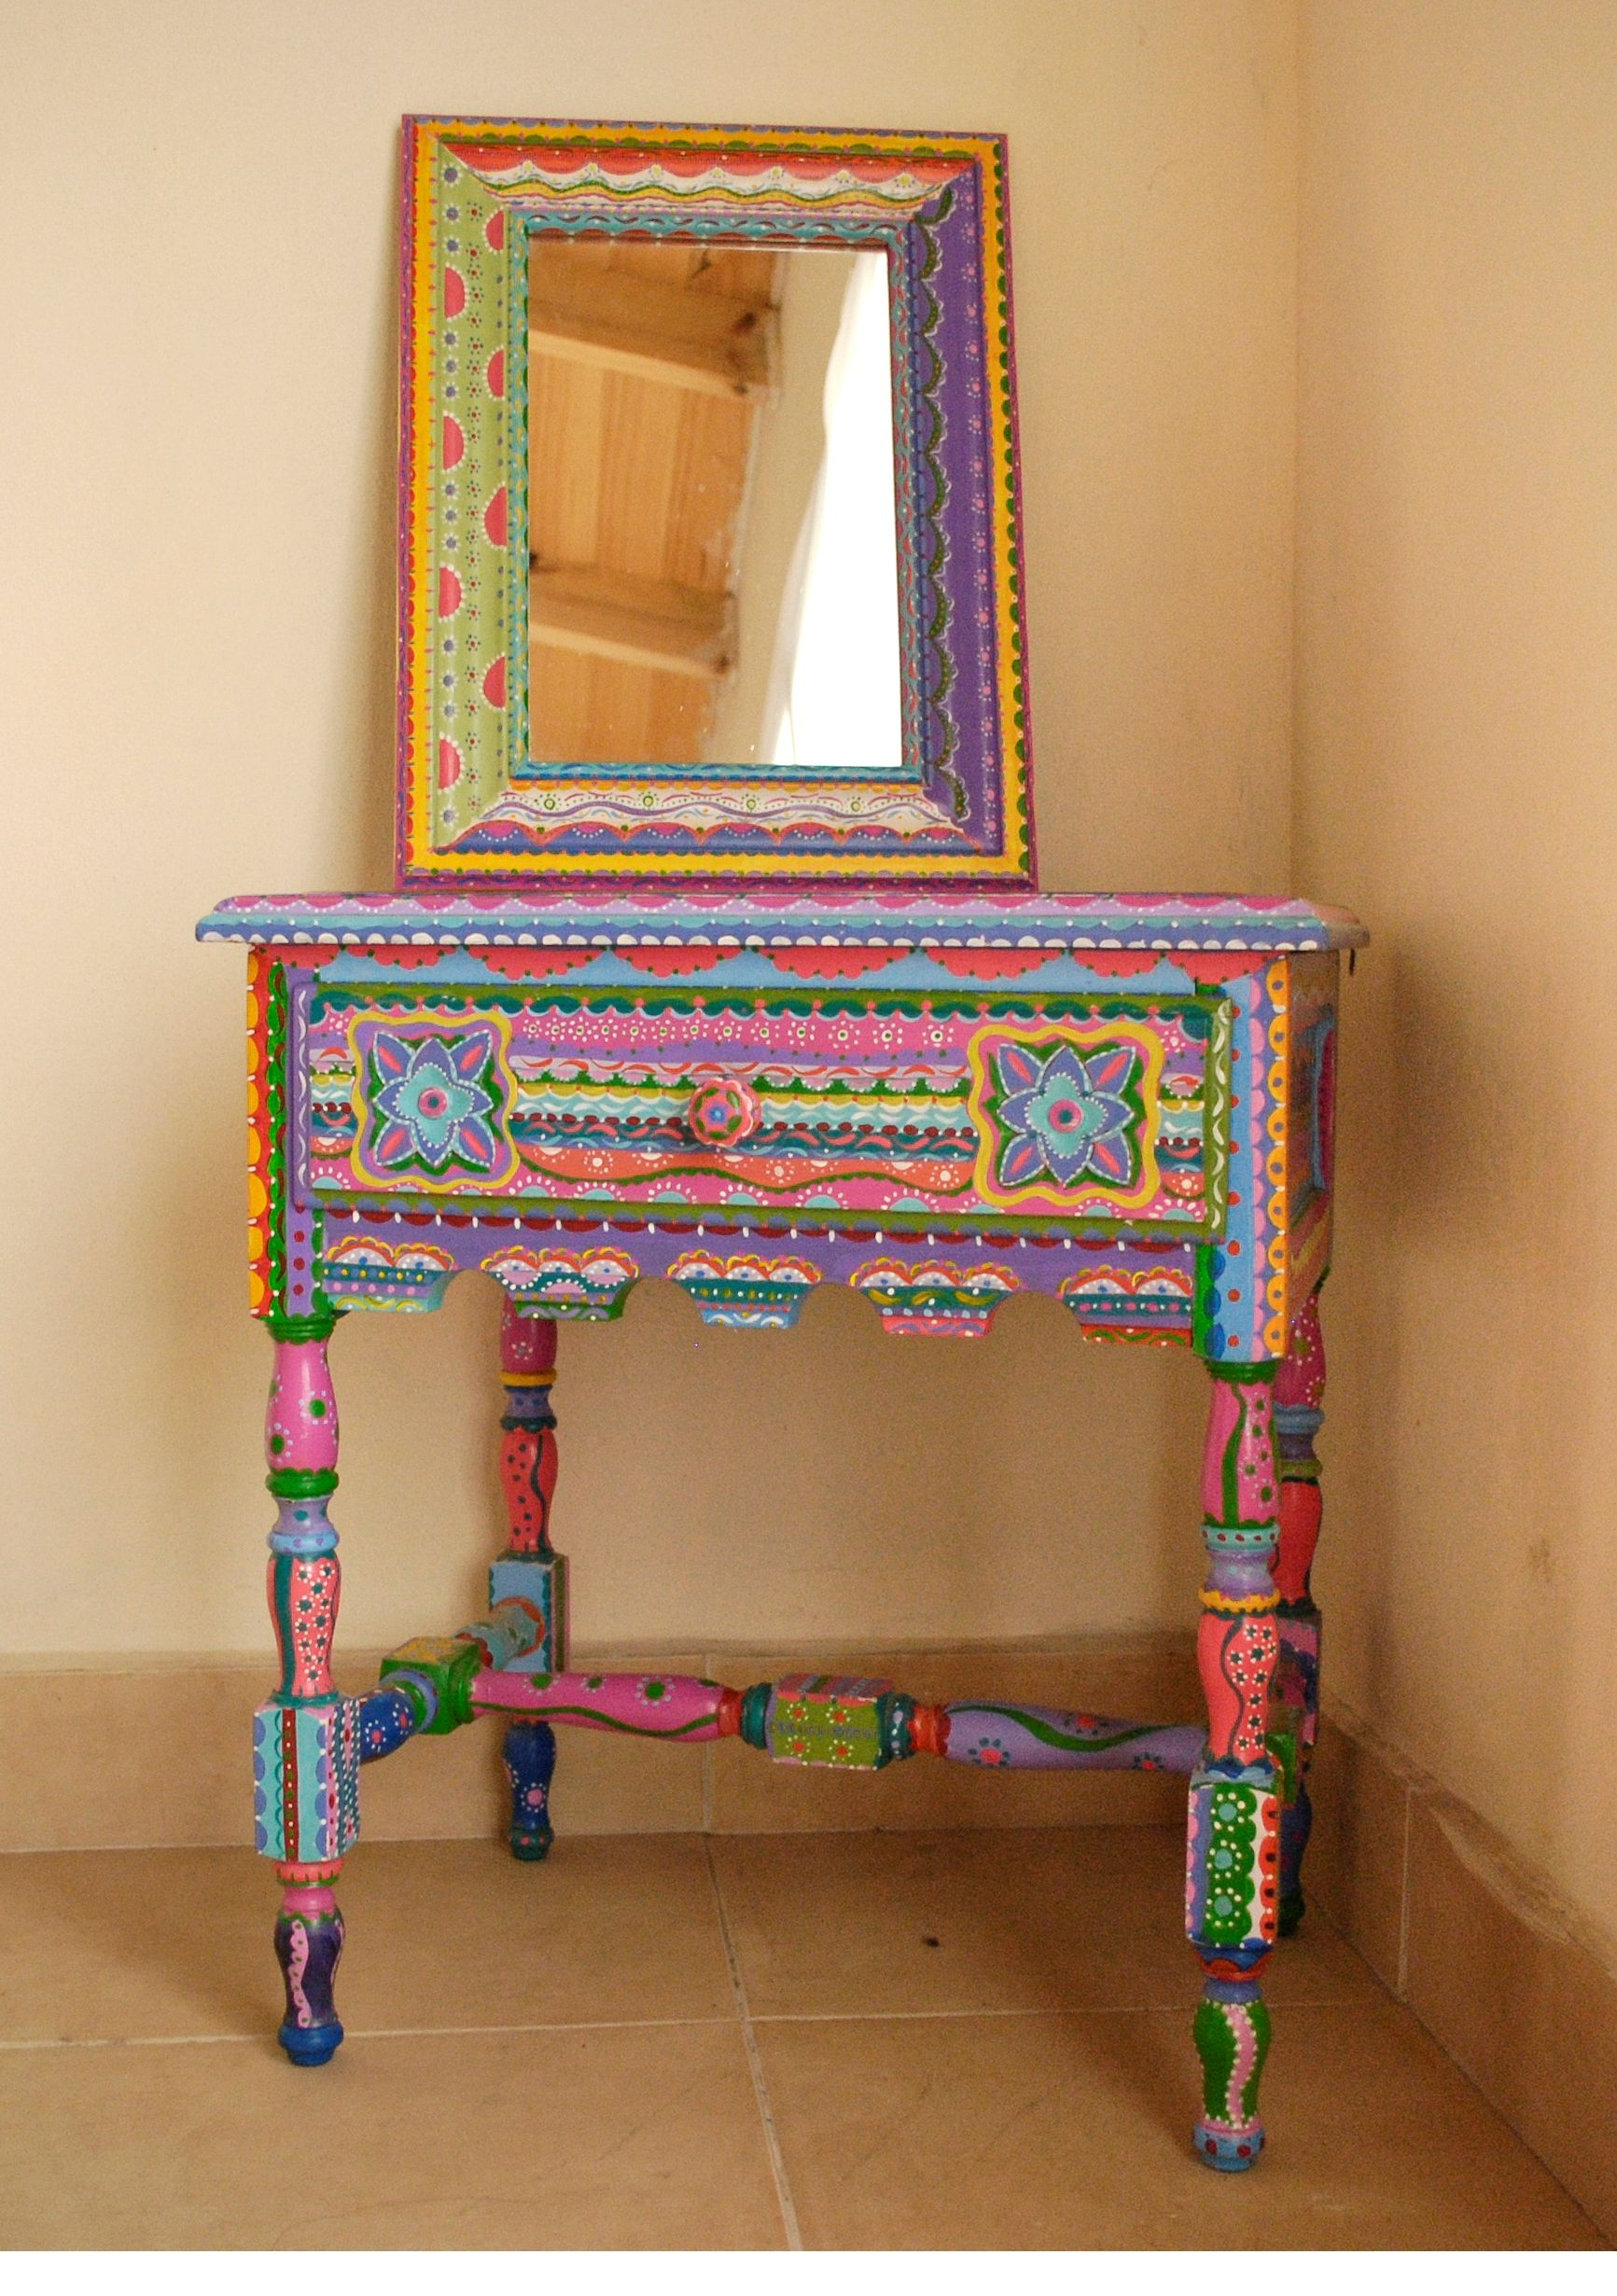 Mueble Mexicano Antique Table Intervened By Artist Mesa Mexican Style Tables